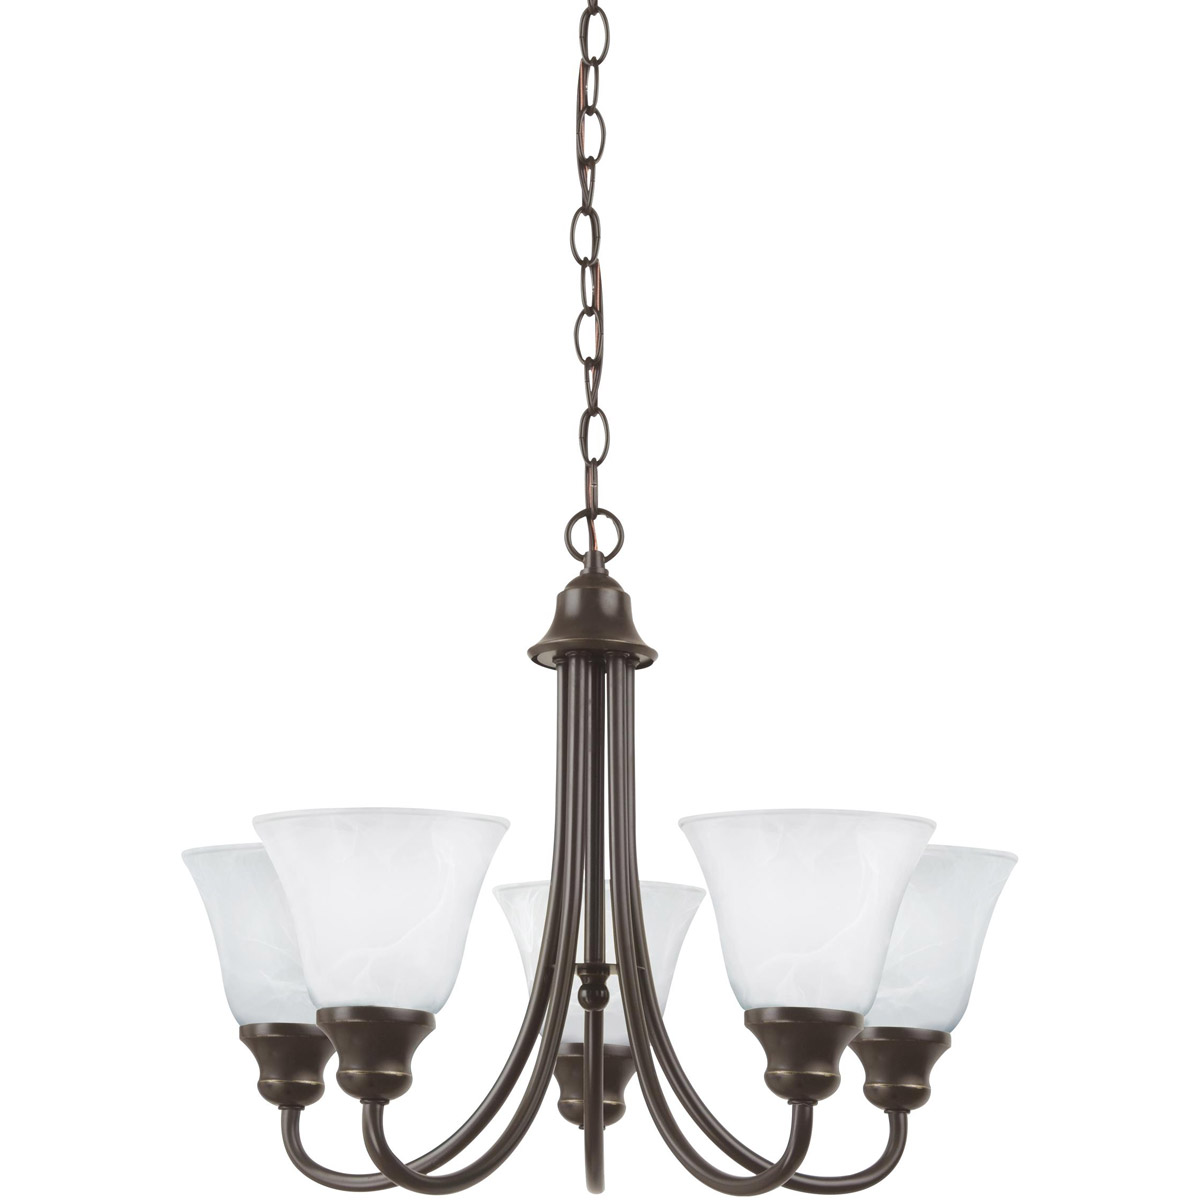 Sea Gull 35940-782 Windgate 5 Light 20 inch Heirloom Bronze Chandelier Ceiling Light in Standard photo